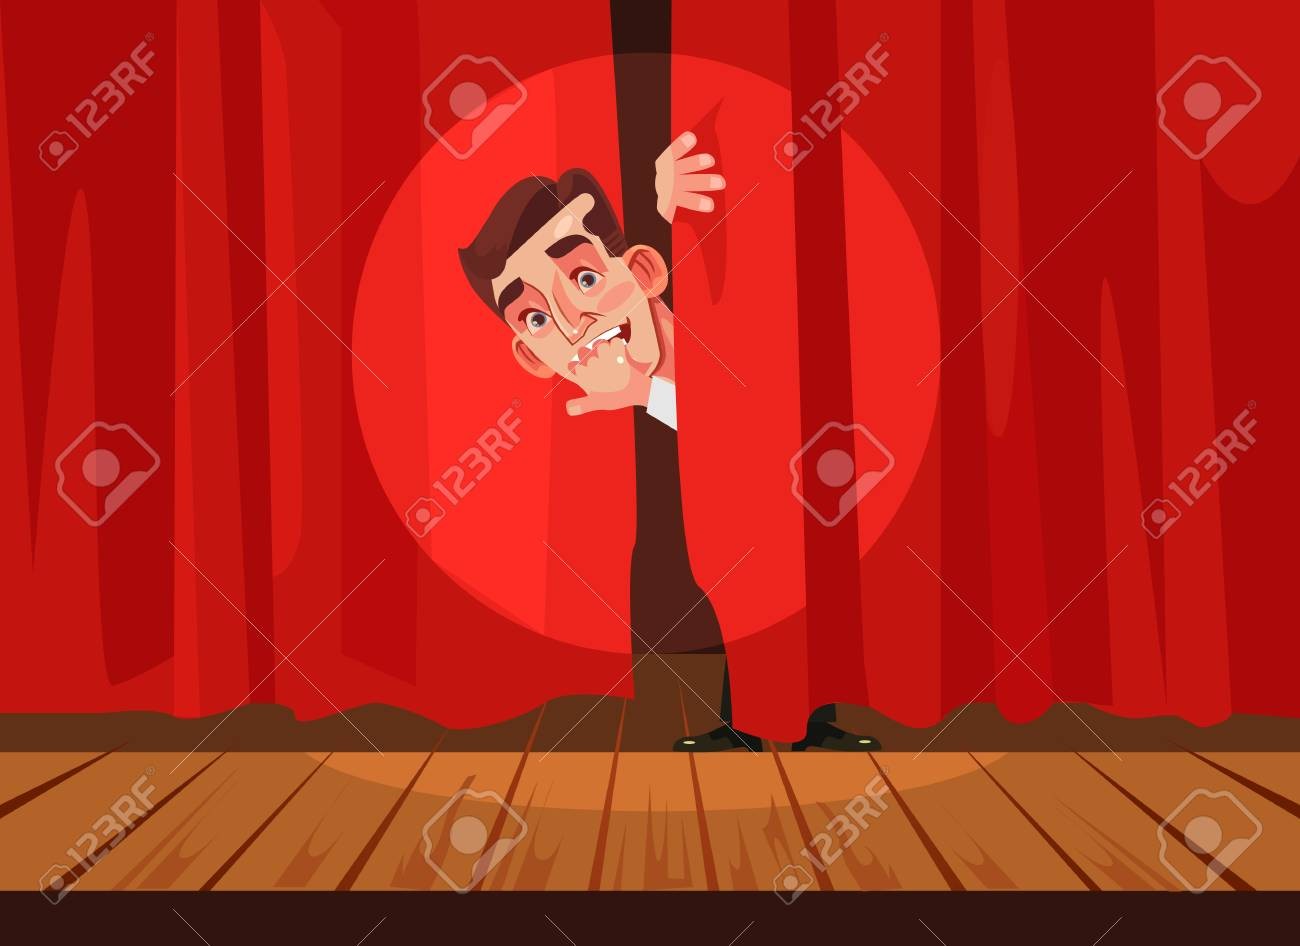 Man afraid of performing on stage, Phobia concept Vector flat cartoon illustration - 90667120